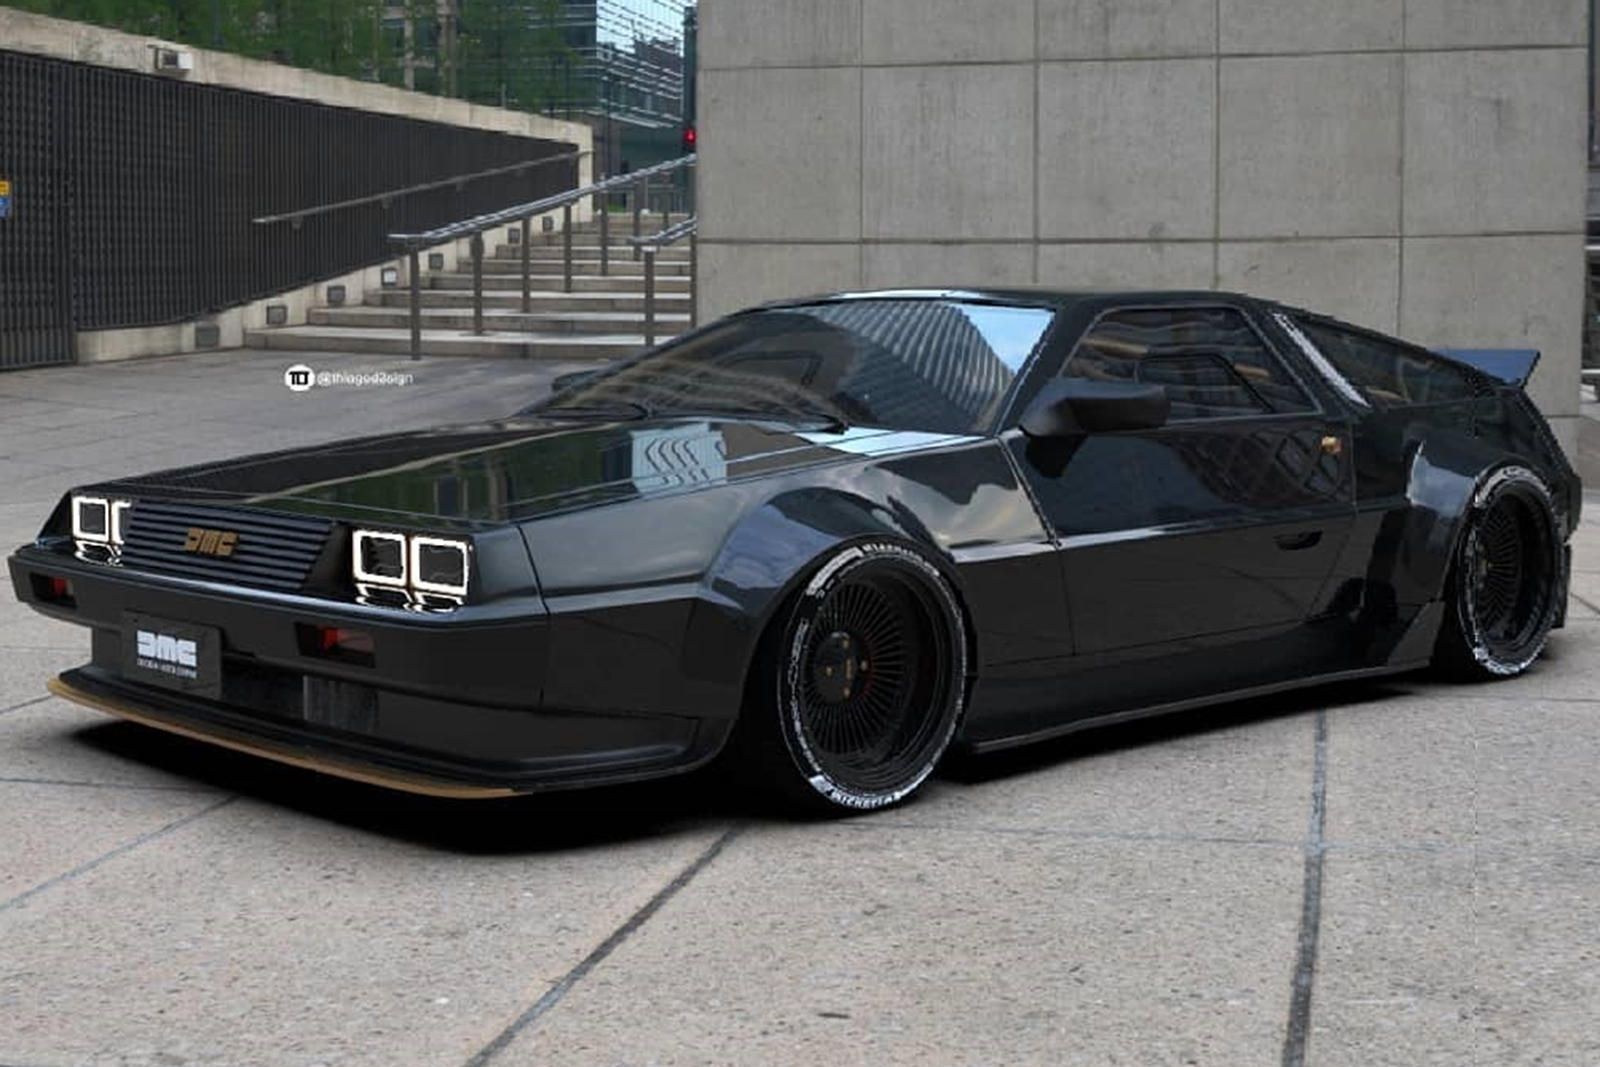 Photo of This DeLorean DMC-12 Restomod Is Exactly What We All Need | Grand Tour Nation